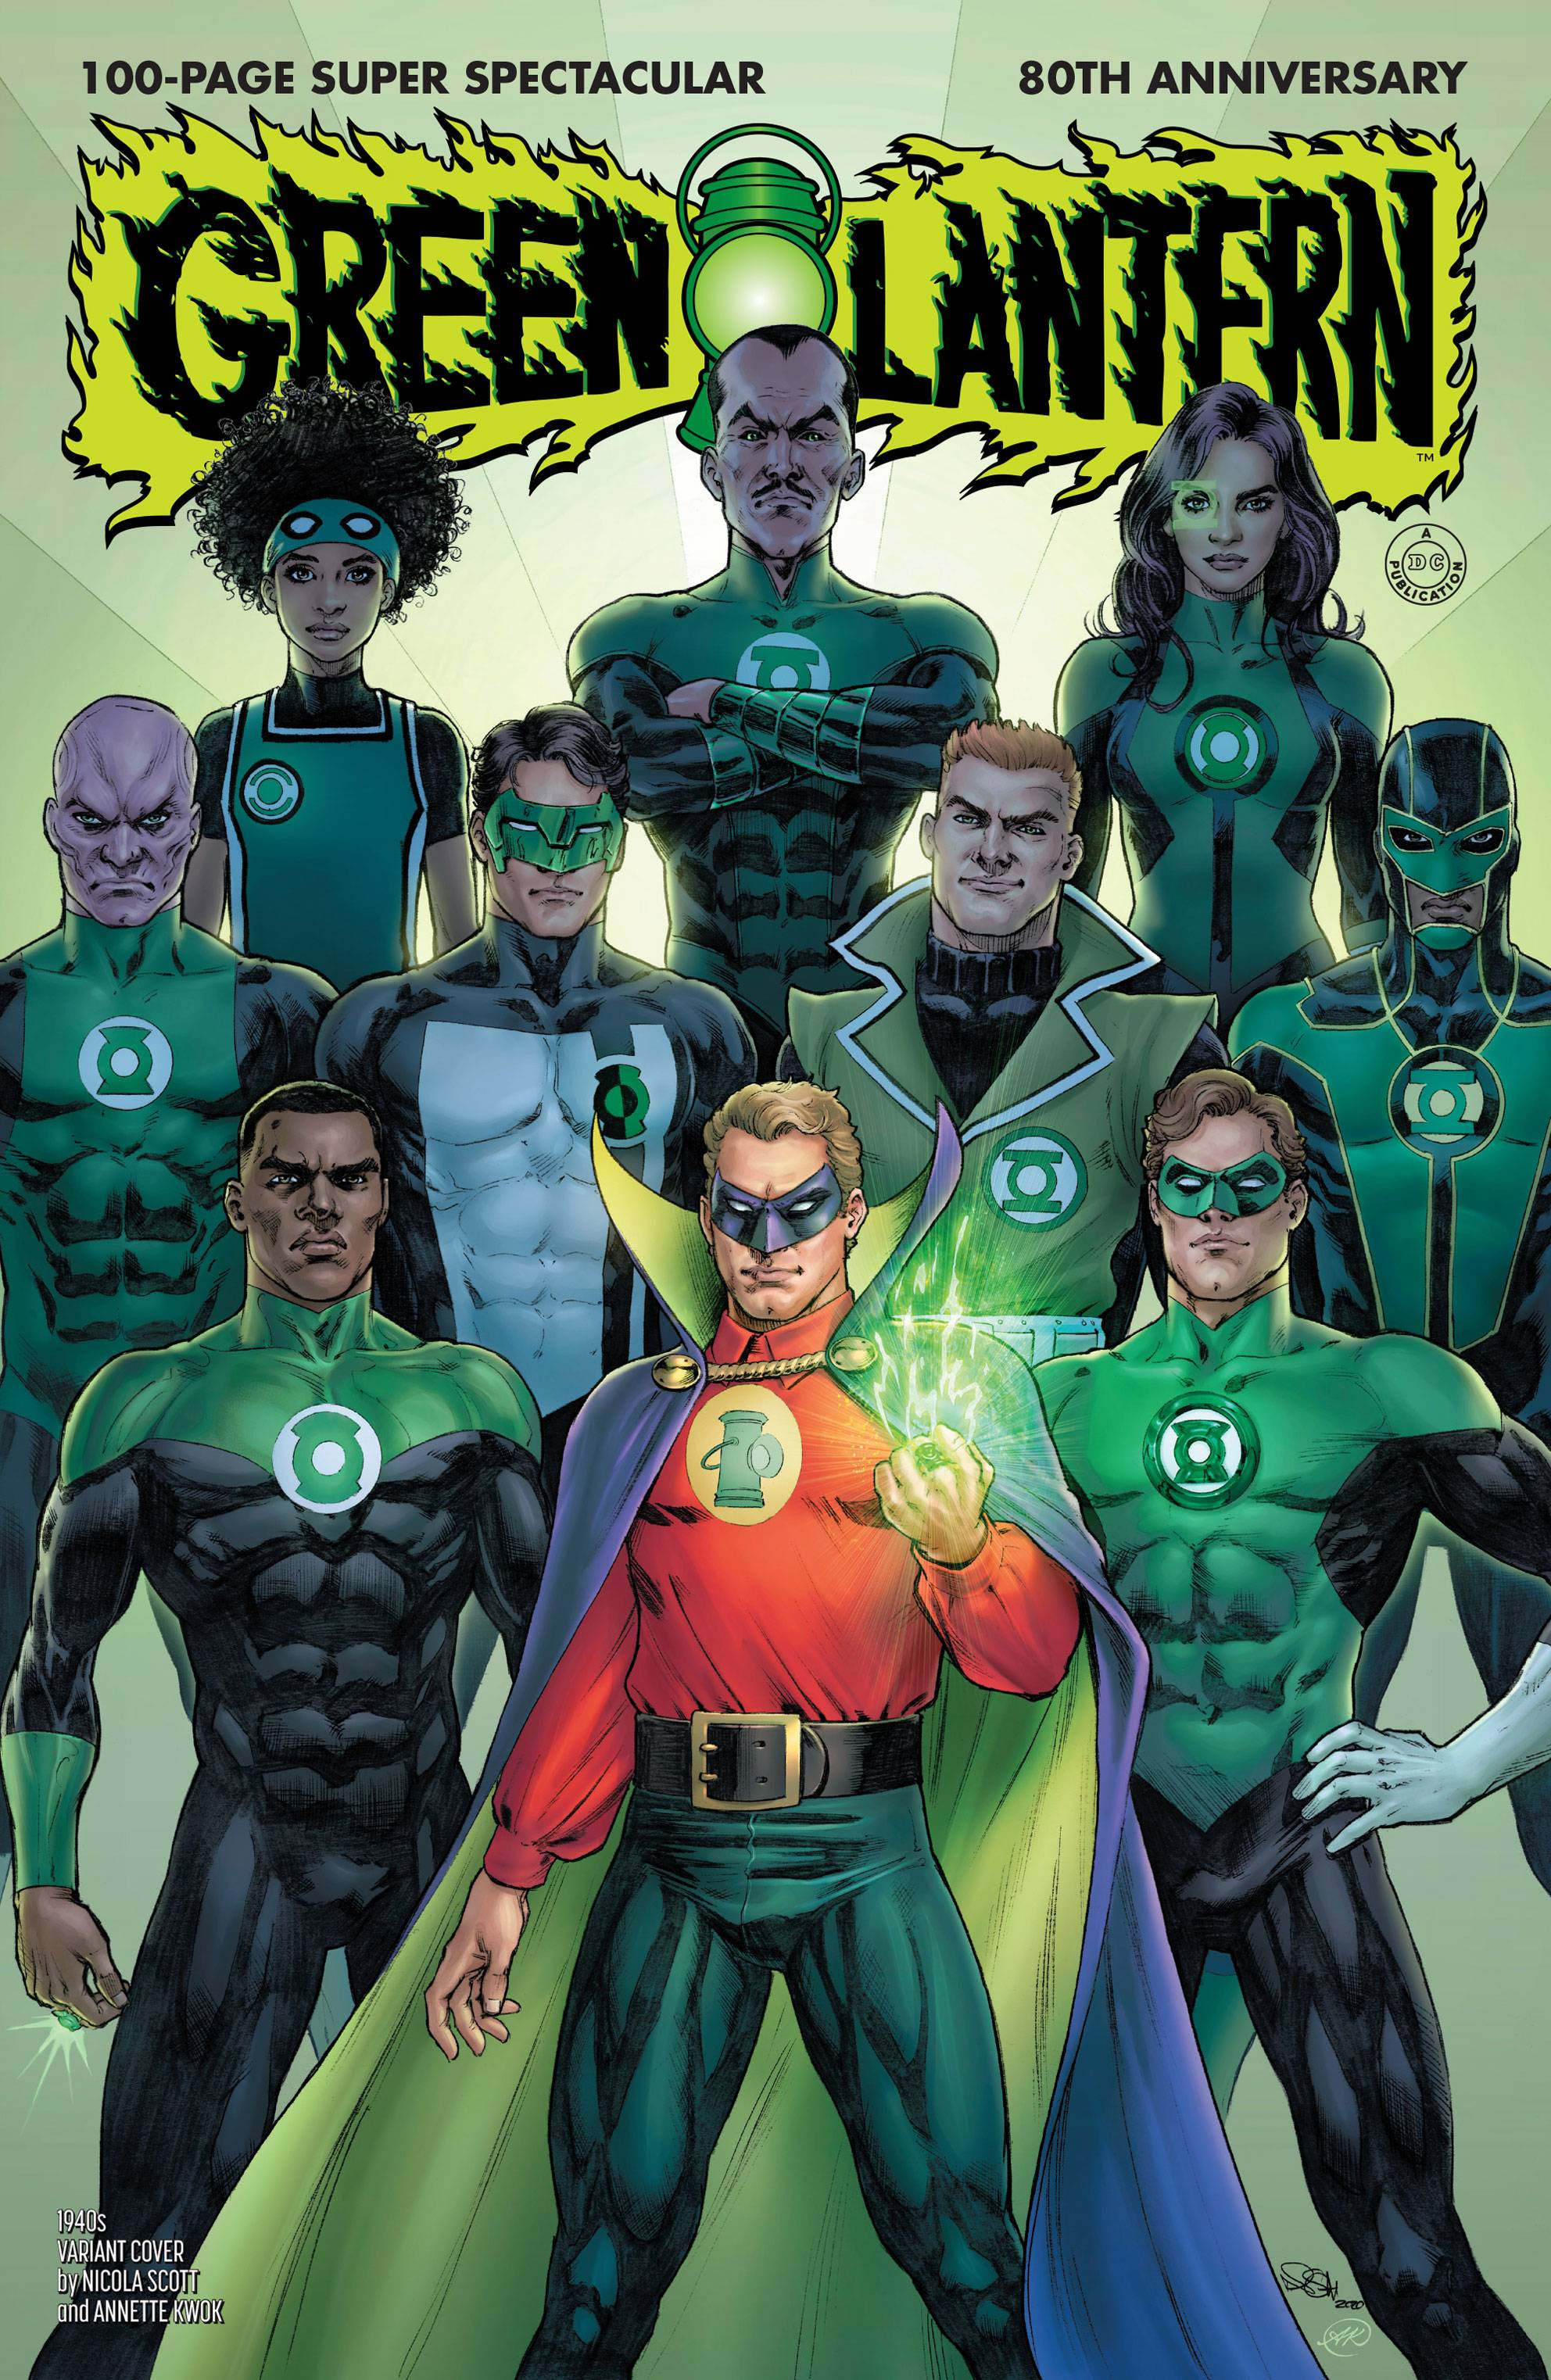 GREEN LANTERN 80TH ANNIV 100 PAGE SUPER SPECT #1 1940S VAR E